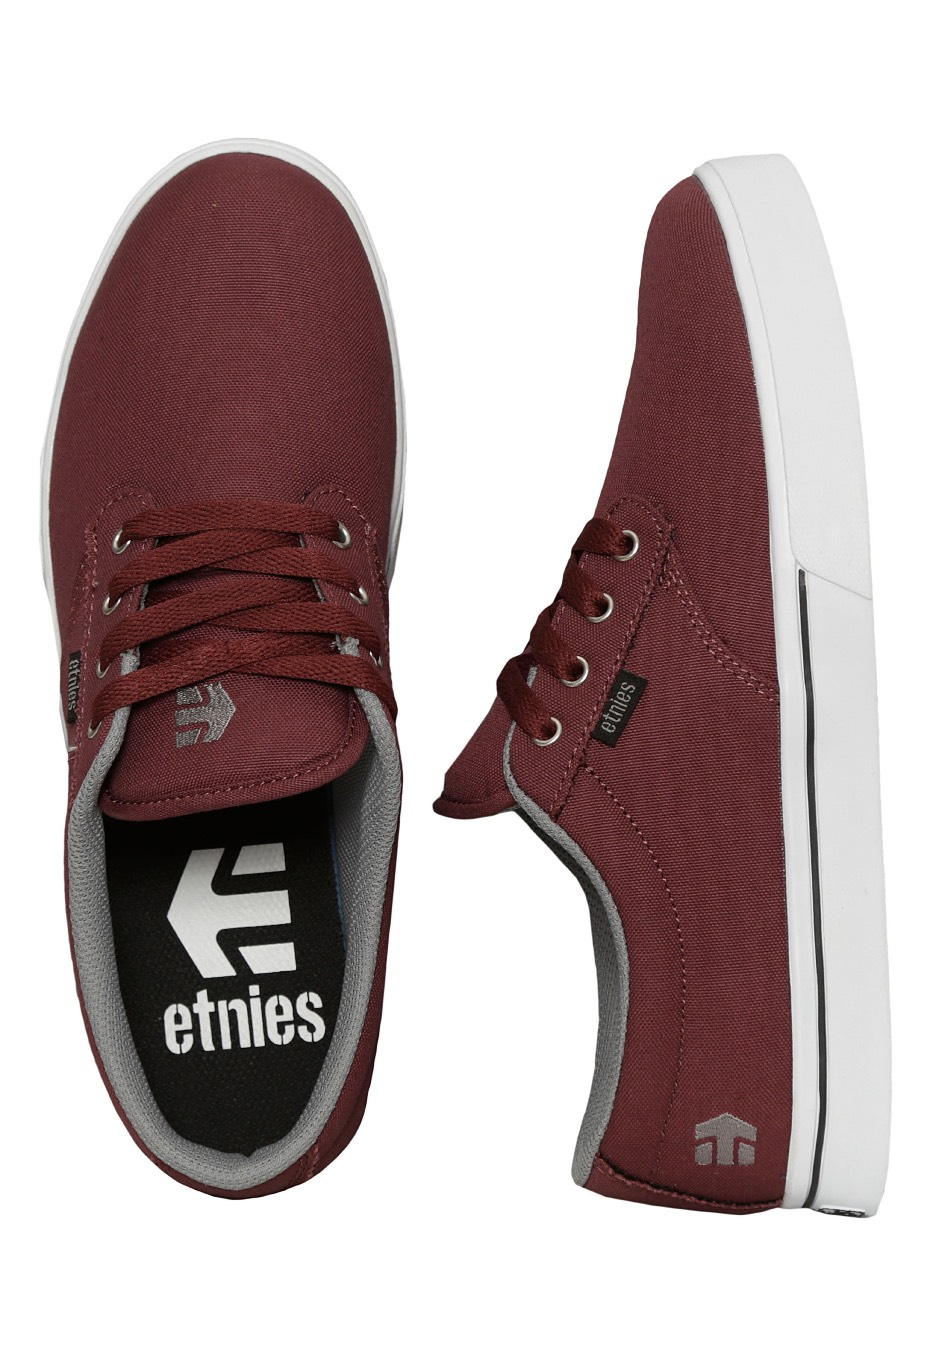 Etnies - Jameson 2 Eco Red Grey Black - Schuhe - Impericon.com DE 0b115c67a3